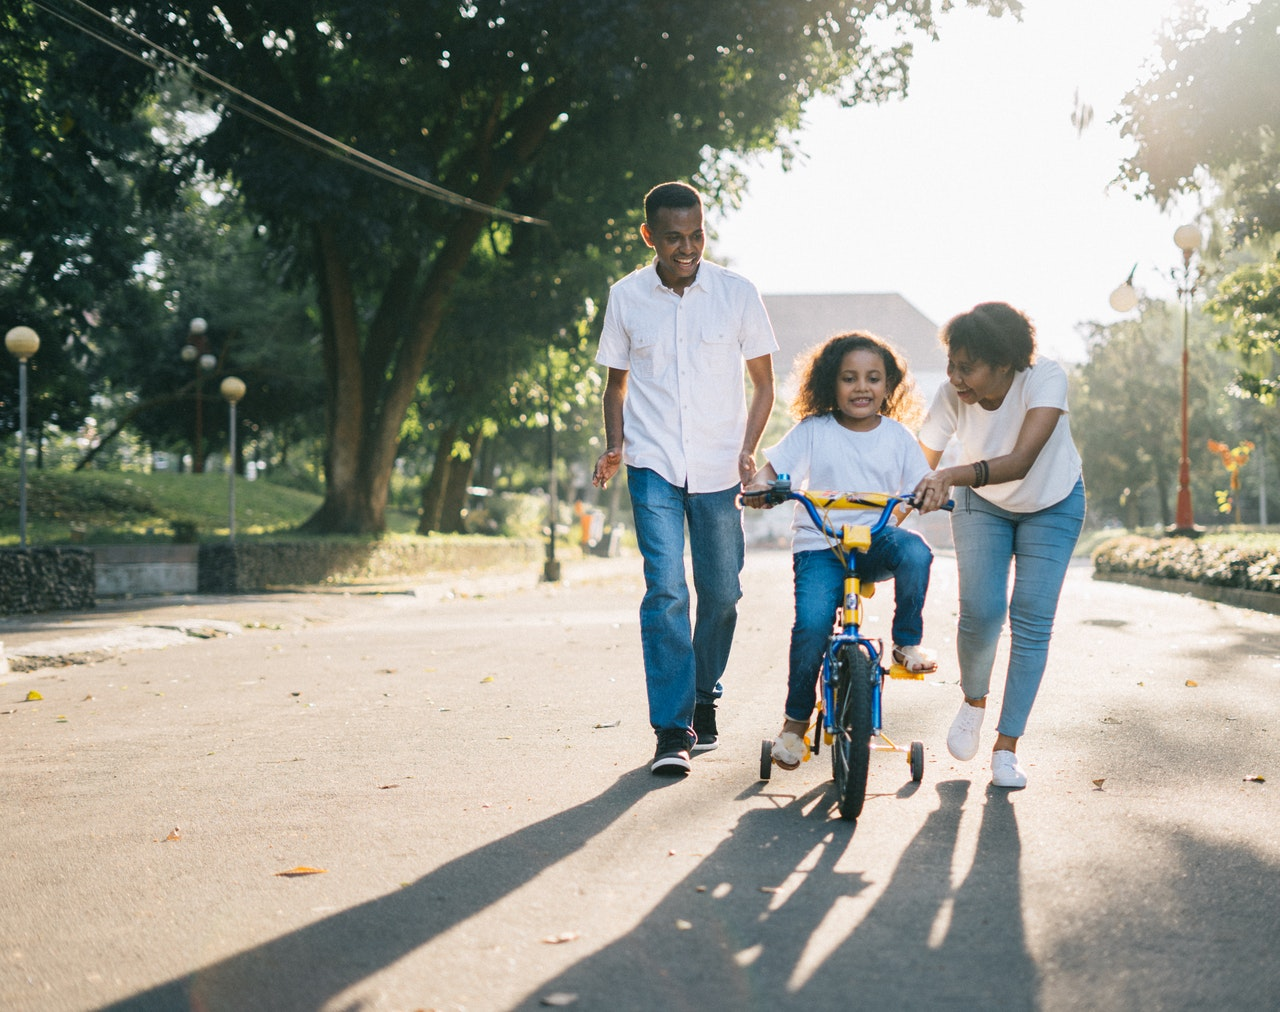 Girl on Bike with man and woman assisting her